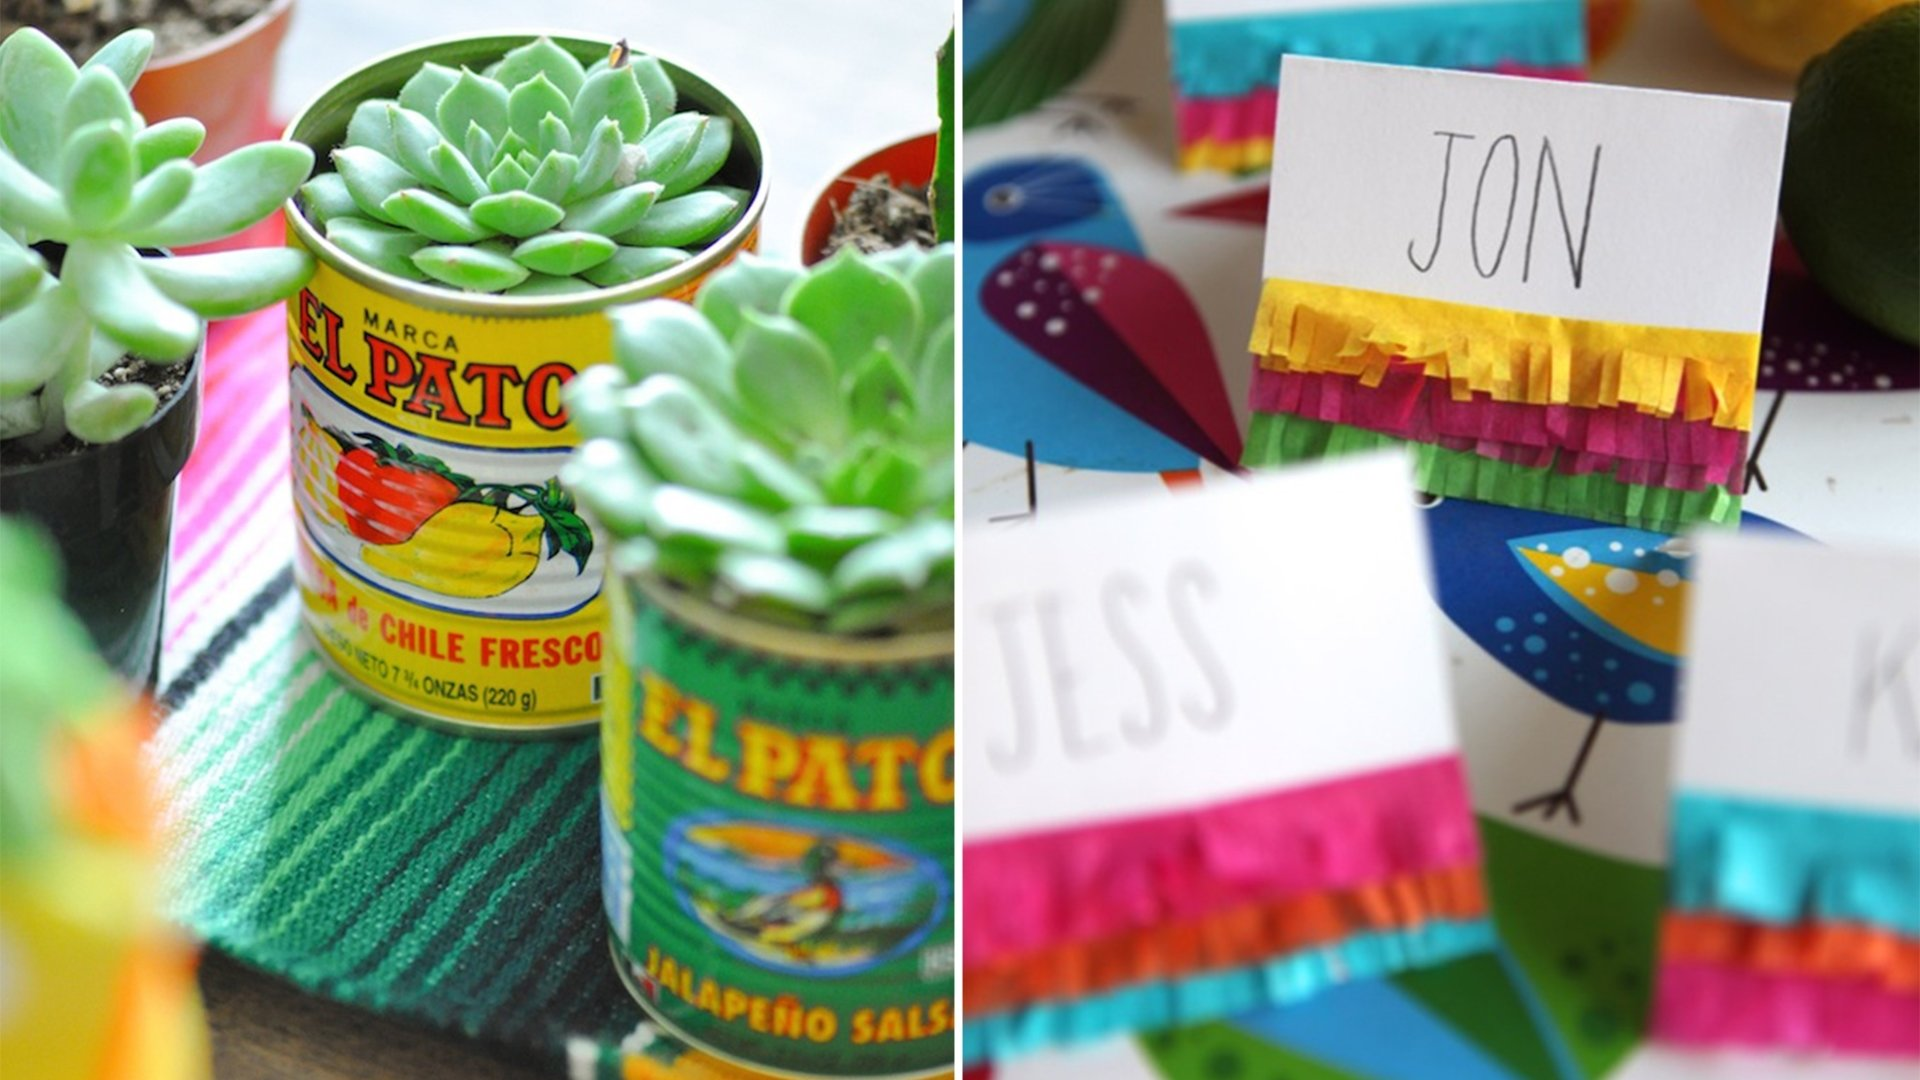 10 Great 5 De Mayo Party Ideas cinco de mayo decorations 10 diys and party ideas 5 2021